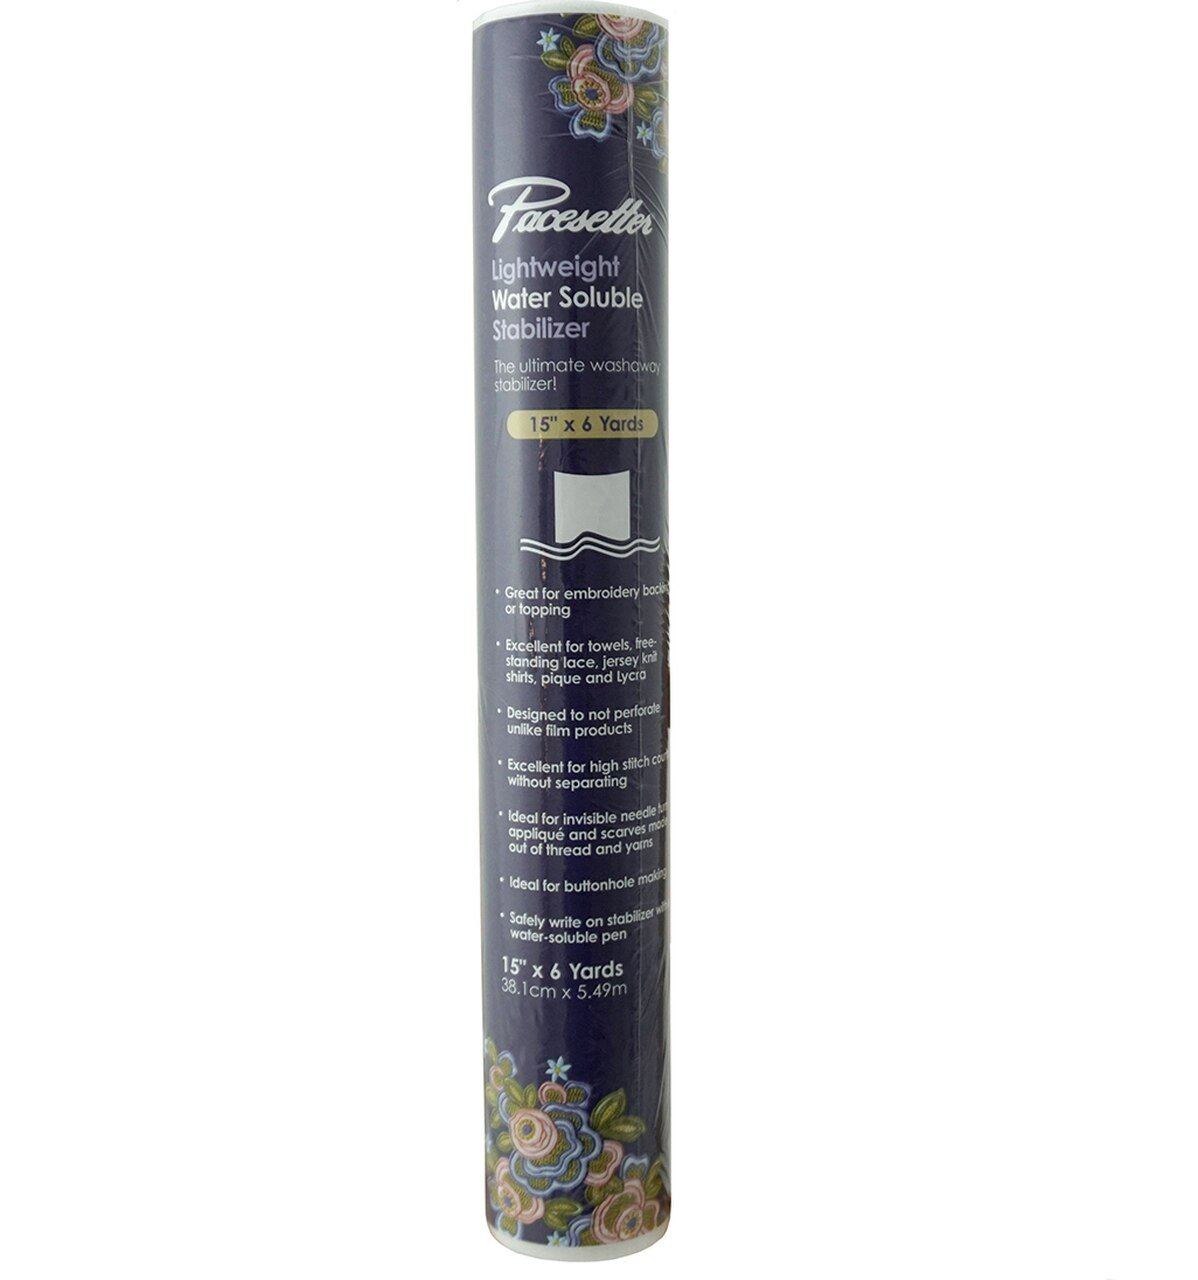 Brother Pacesetter Lightweight Water-Soluble Stabilizer